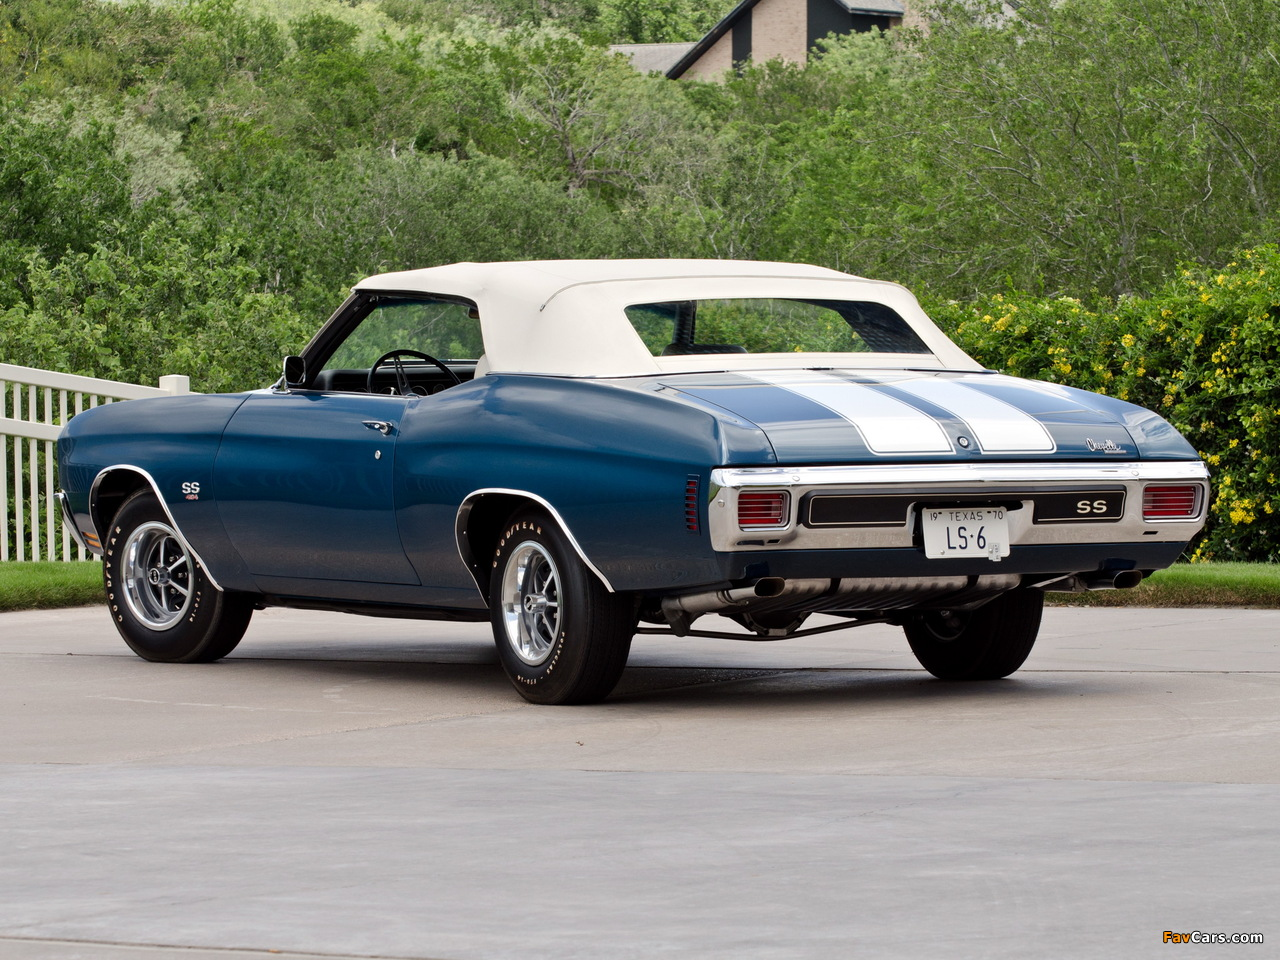 Wallpapers of Chevrolet Chevelle SS 454 LS6 Convertible 1970 1280x960 1280x960